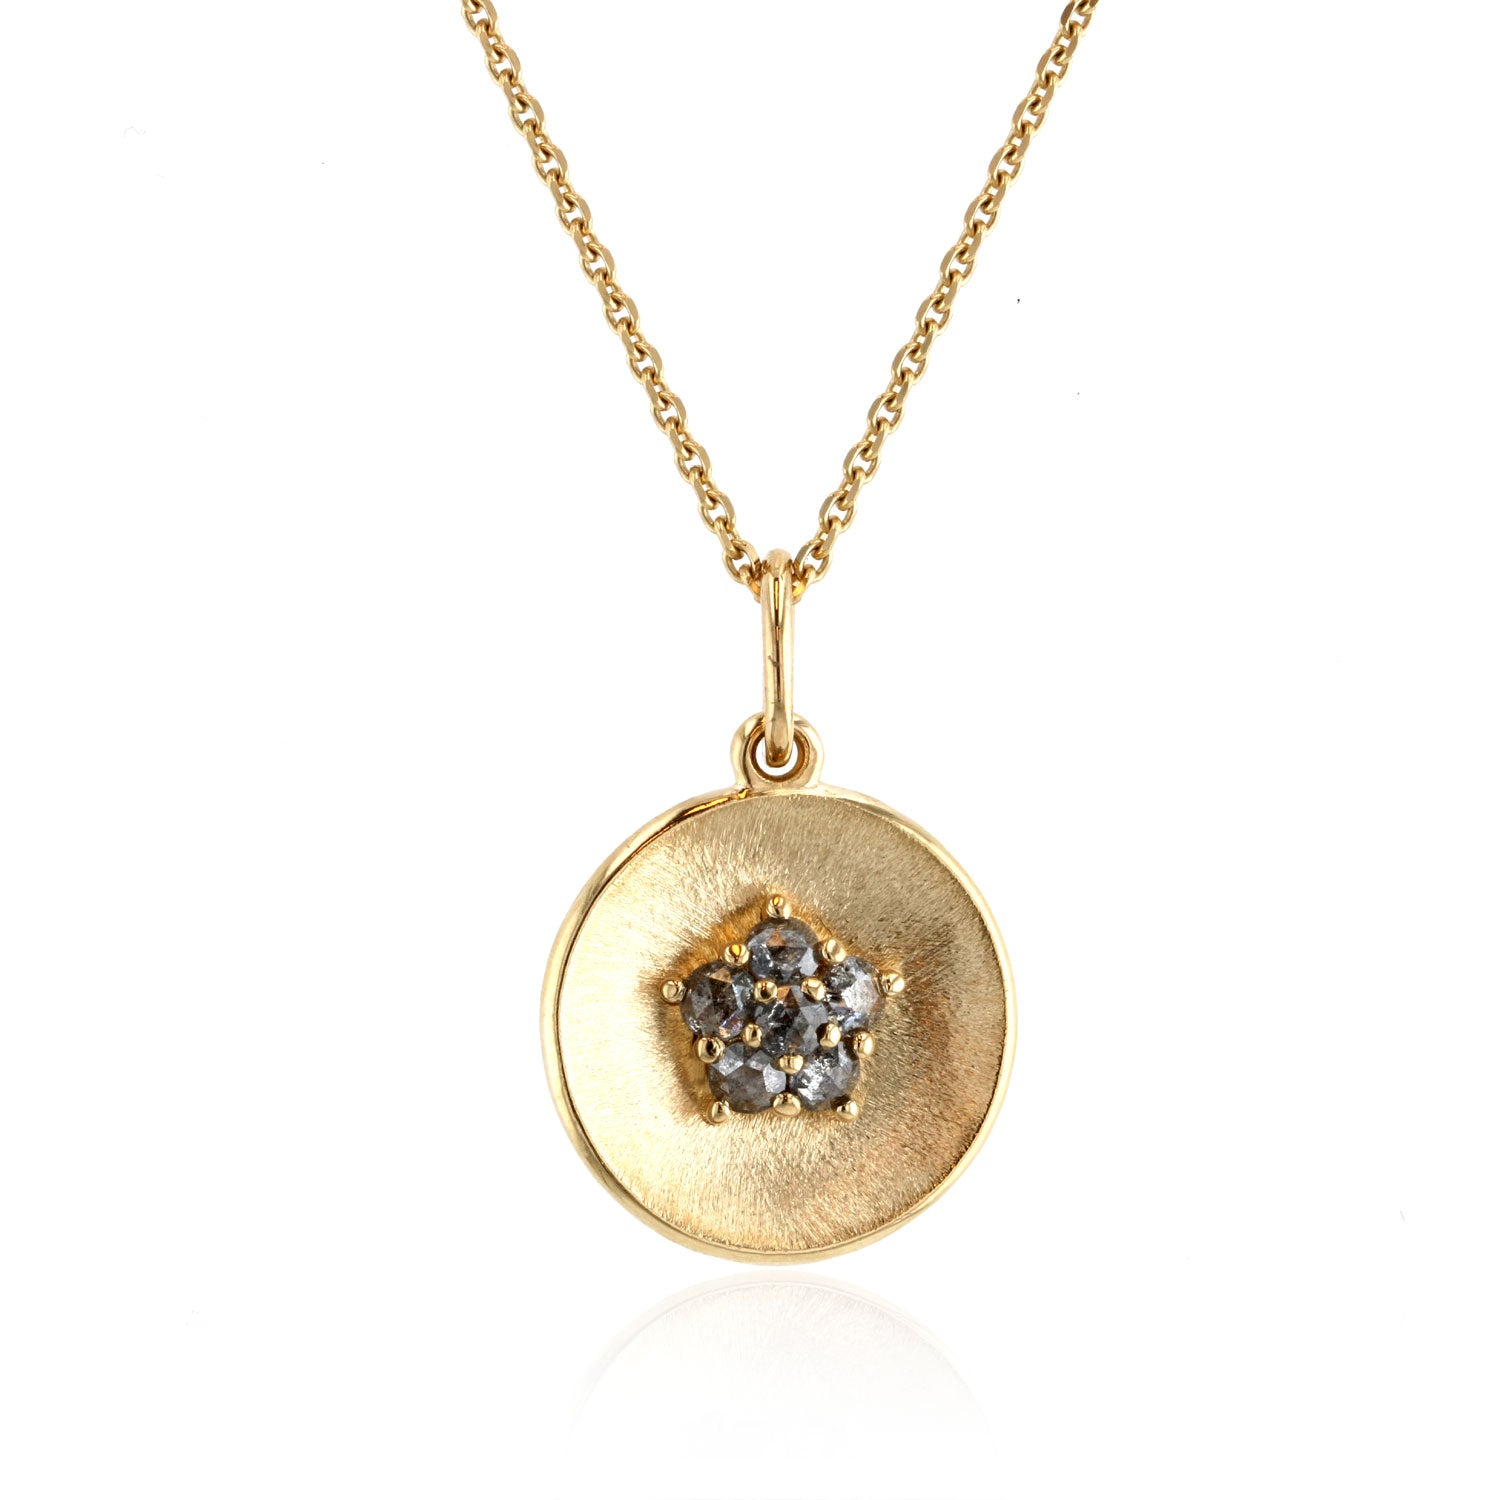 Disk Pendant with rose cut Dark Grey diamonds - 18K Yellow Gold